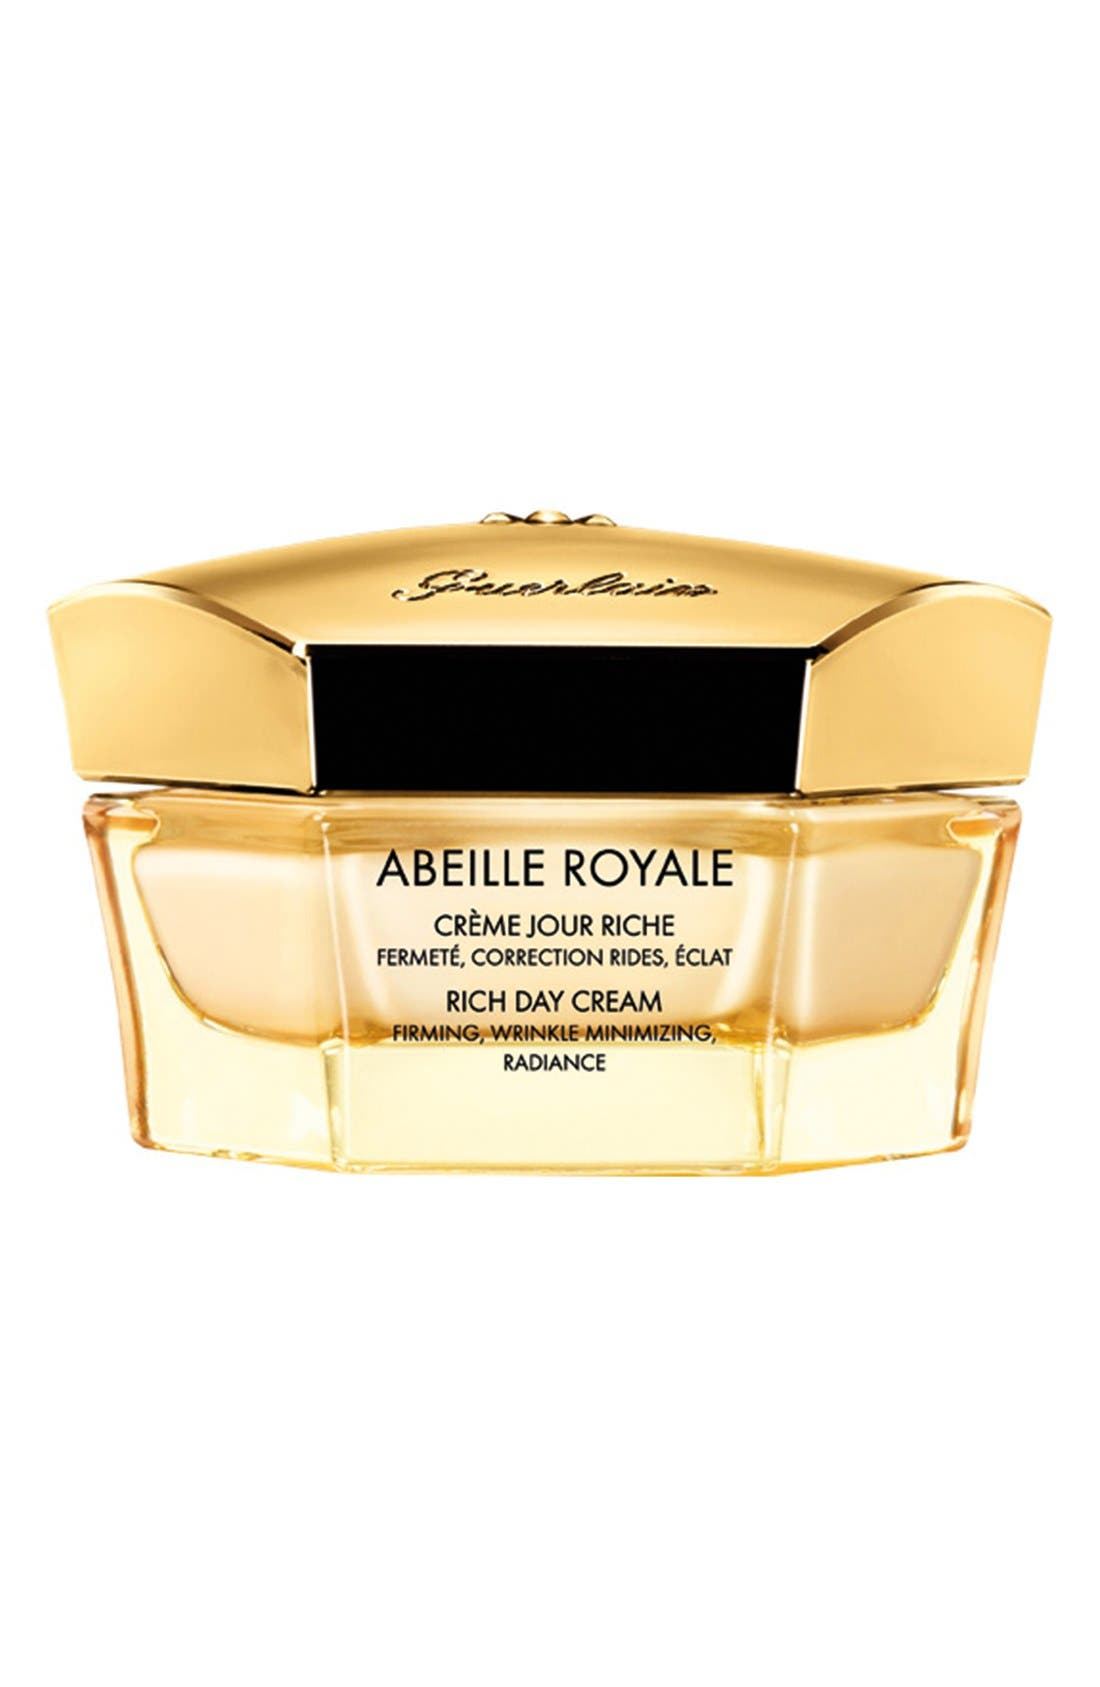 Abeille Royale Rich Day Cream,                             Main thumbnail 1, color,                             NO COLOR